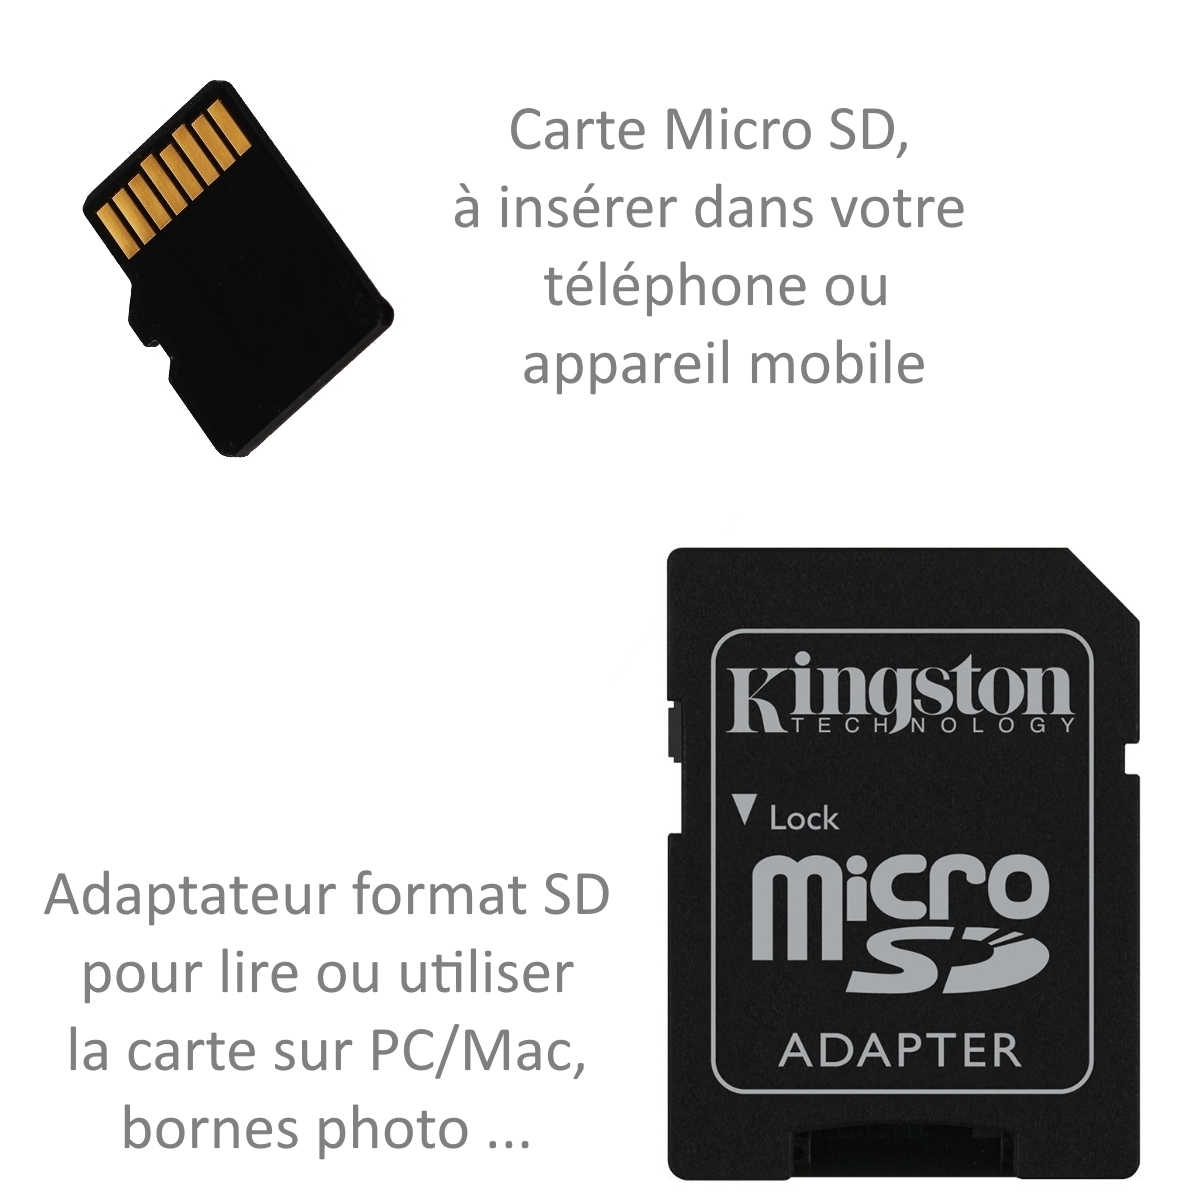 carte micro sd pour sony xperia m4 e4g 32 go sdhc adapt sd integral ebay. Black Bedroom Furniture Sets. Home Design Ideas